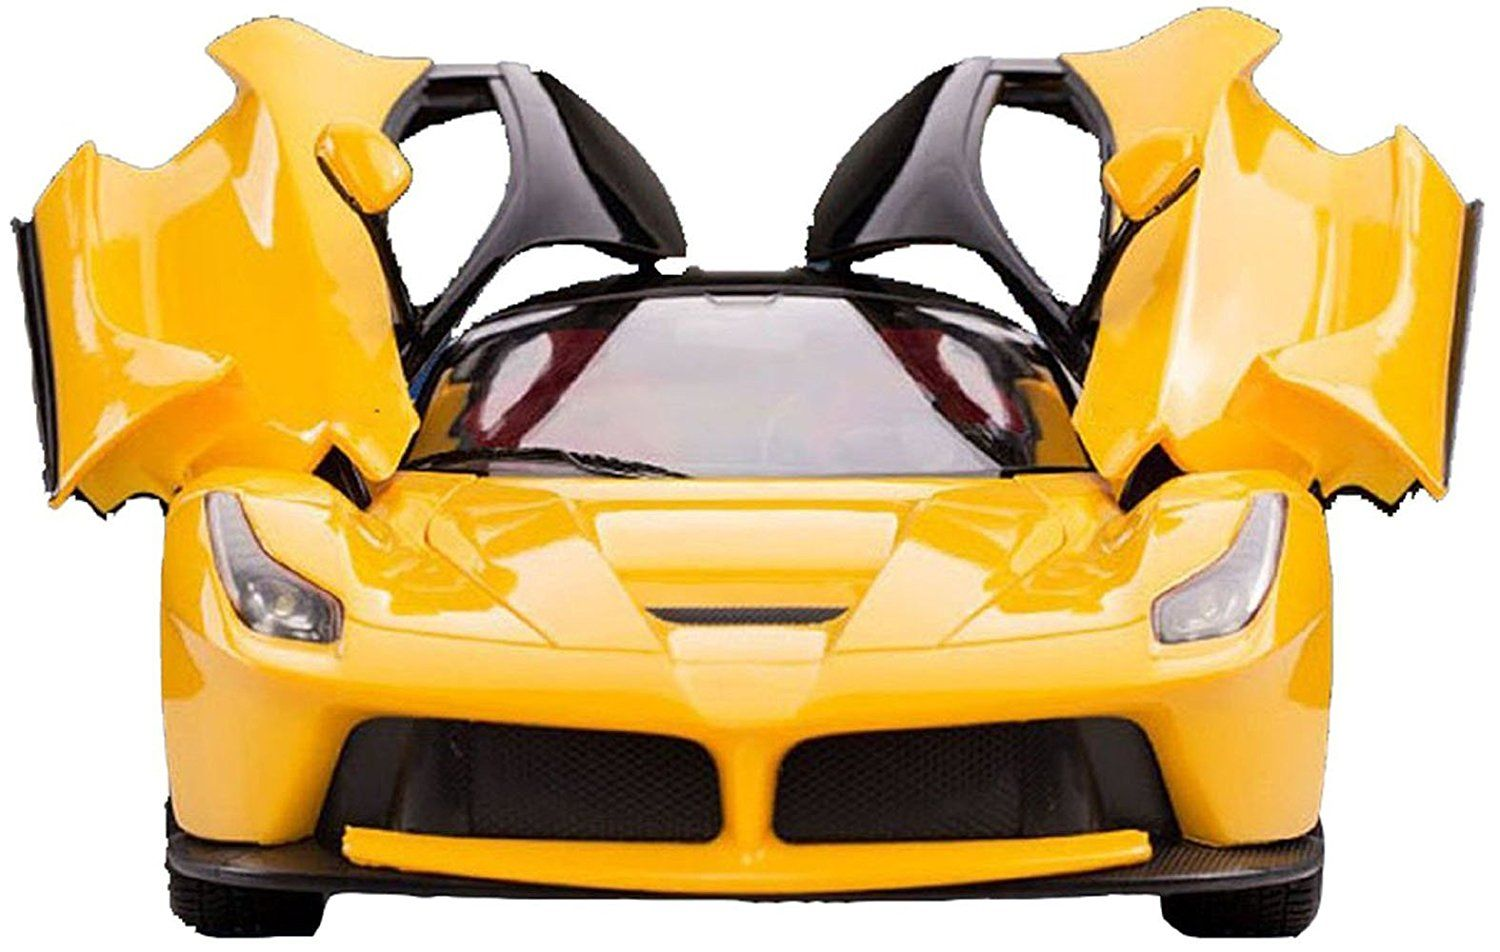 Saffire Remote Controlled Super Car with Opening Doors